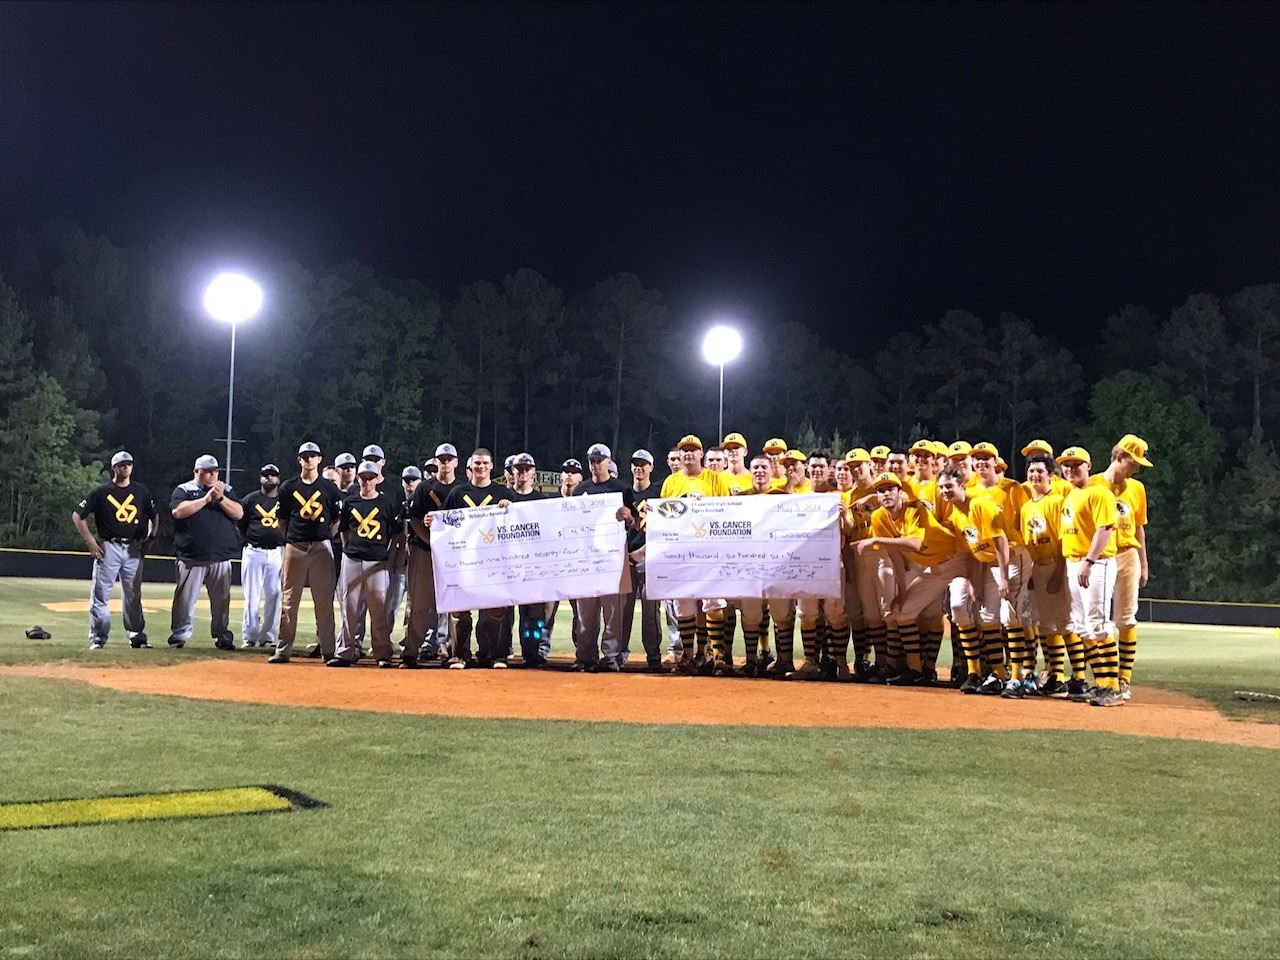 CHHS and East baseball for Vs Cancer